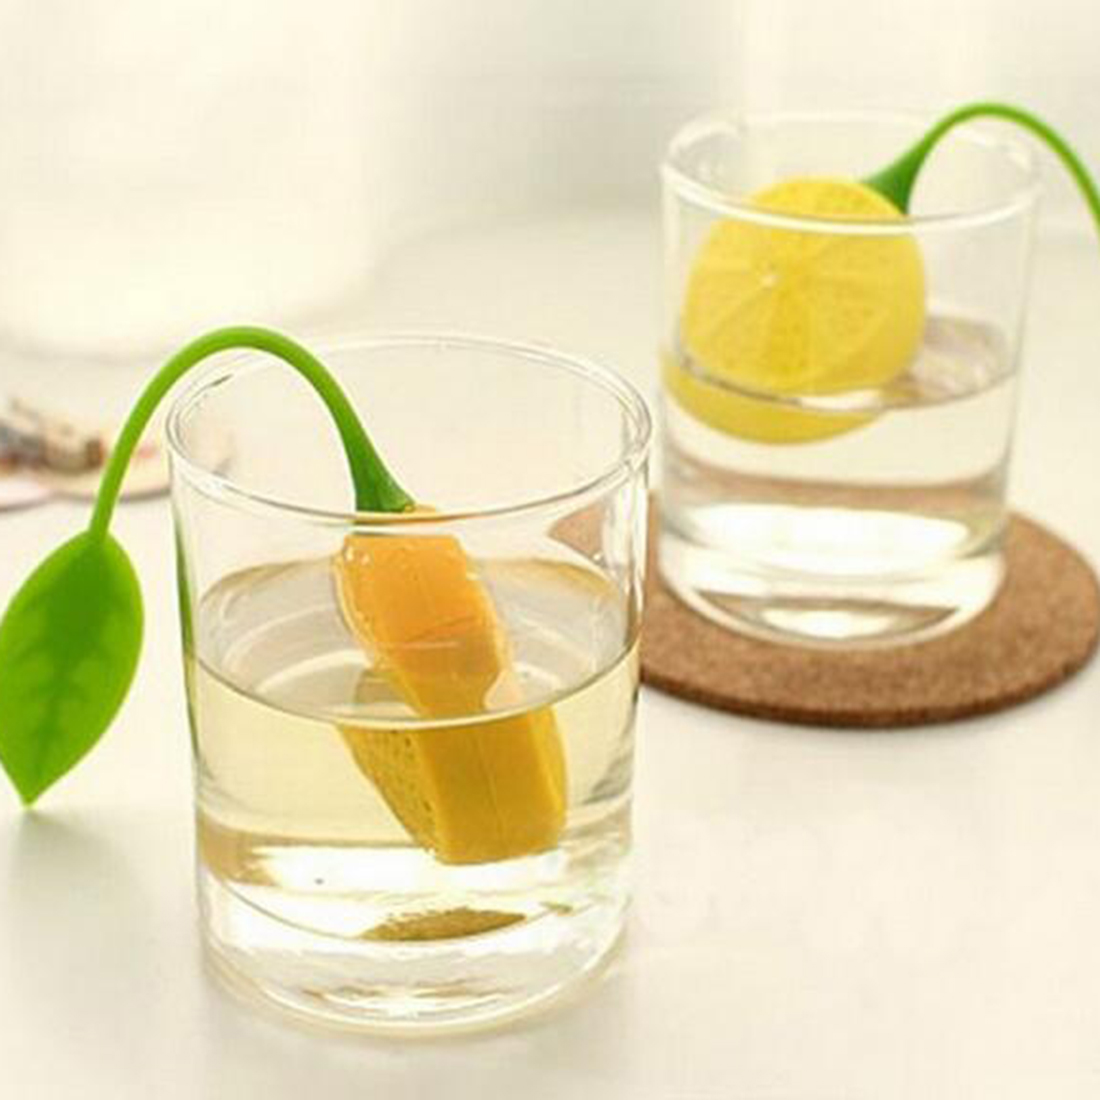 1Pc  Tea Strainer Silicone Strawberry Lemon Design Loose Tea Leaf Strainer Bag Herbal Spice Infuser Filter Tool Random Color  1Pc  Tea Strainer Silicone Strawberry Lemon Design Loose Tea Leaf Strainer Bag Herbal Spice Infuser Filter Tool Random Color  1Pc  Tea Strainer Silicone Strawberry Lemon Design Loose Tea Leaf Strainer Bag Herbal Spice Infuser Filter Tool Random Color  1Pc  Tea Strainer Silicone Strawberry Lemon Design Loose Tea Leaf Strainer Bag Herbal Spice Infuser Filter Tool Random Color  1Pc  Tea Strainer Silicone Strawberry Lemon Design Loose Tea Leaf Strainer Bag Herbal Spice Infuser Filter Tool Random Color  1Pc  Tea Strainer Silicone Strawberry Lemon Design Loose Tea Leaf Strainer Bag Herbal Spice Infuser Filter Tool Random Color  1Pc  Tea Strainer Silicone Strawberry Lemon Design Loose Tea Leaf Strainer Bag Herbal Spice Infuser Filter Tool Random Color  1Pc  Tea Strainer Silicone Strawberry Lemon Design Loose Tea Leaf Strainer Bag Herbal Spice Infuser Filter Tool Random Color  1Pc  Tea Strainer Silicone Strawberry Lemon Design Loose Tea Leaf Strainer Bag Herbal Spice Infuser Filter Tool Random Color  1Pc  Tea Strainer Silicone Strawberry Lemon Design Loose Tea Leaf Strainer Bag Herbal Spice Infuser Filter Tool Random Color  1Pc  Tea Strainer Silicone Strawberry Lemon Design Loose Tea Leaf Strainer Bag Herbal Spice Infuser Filter Tool Random Color  1Pc  Tea Strainer Silicone Strawberry Lemon Design Loose Tea Leaf Strainer Bag Herbal Spice Infuser Filter Tool Random Color